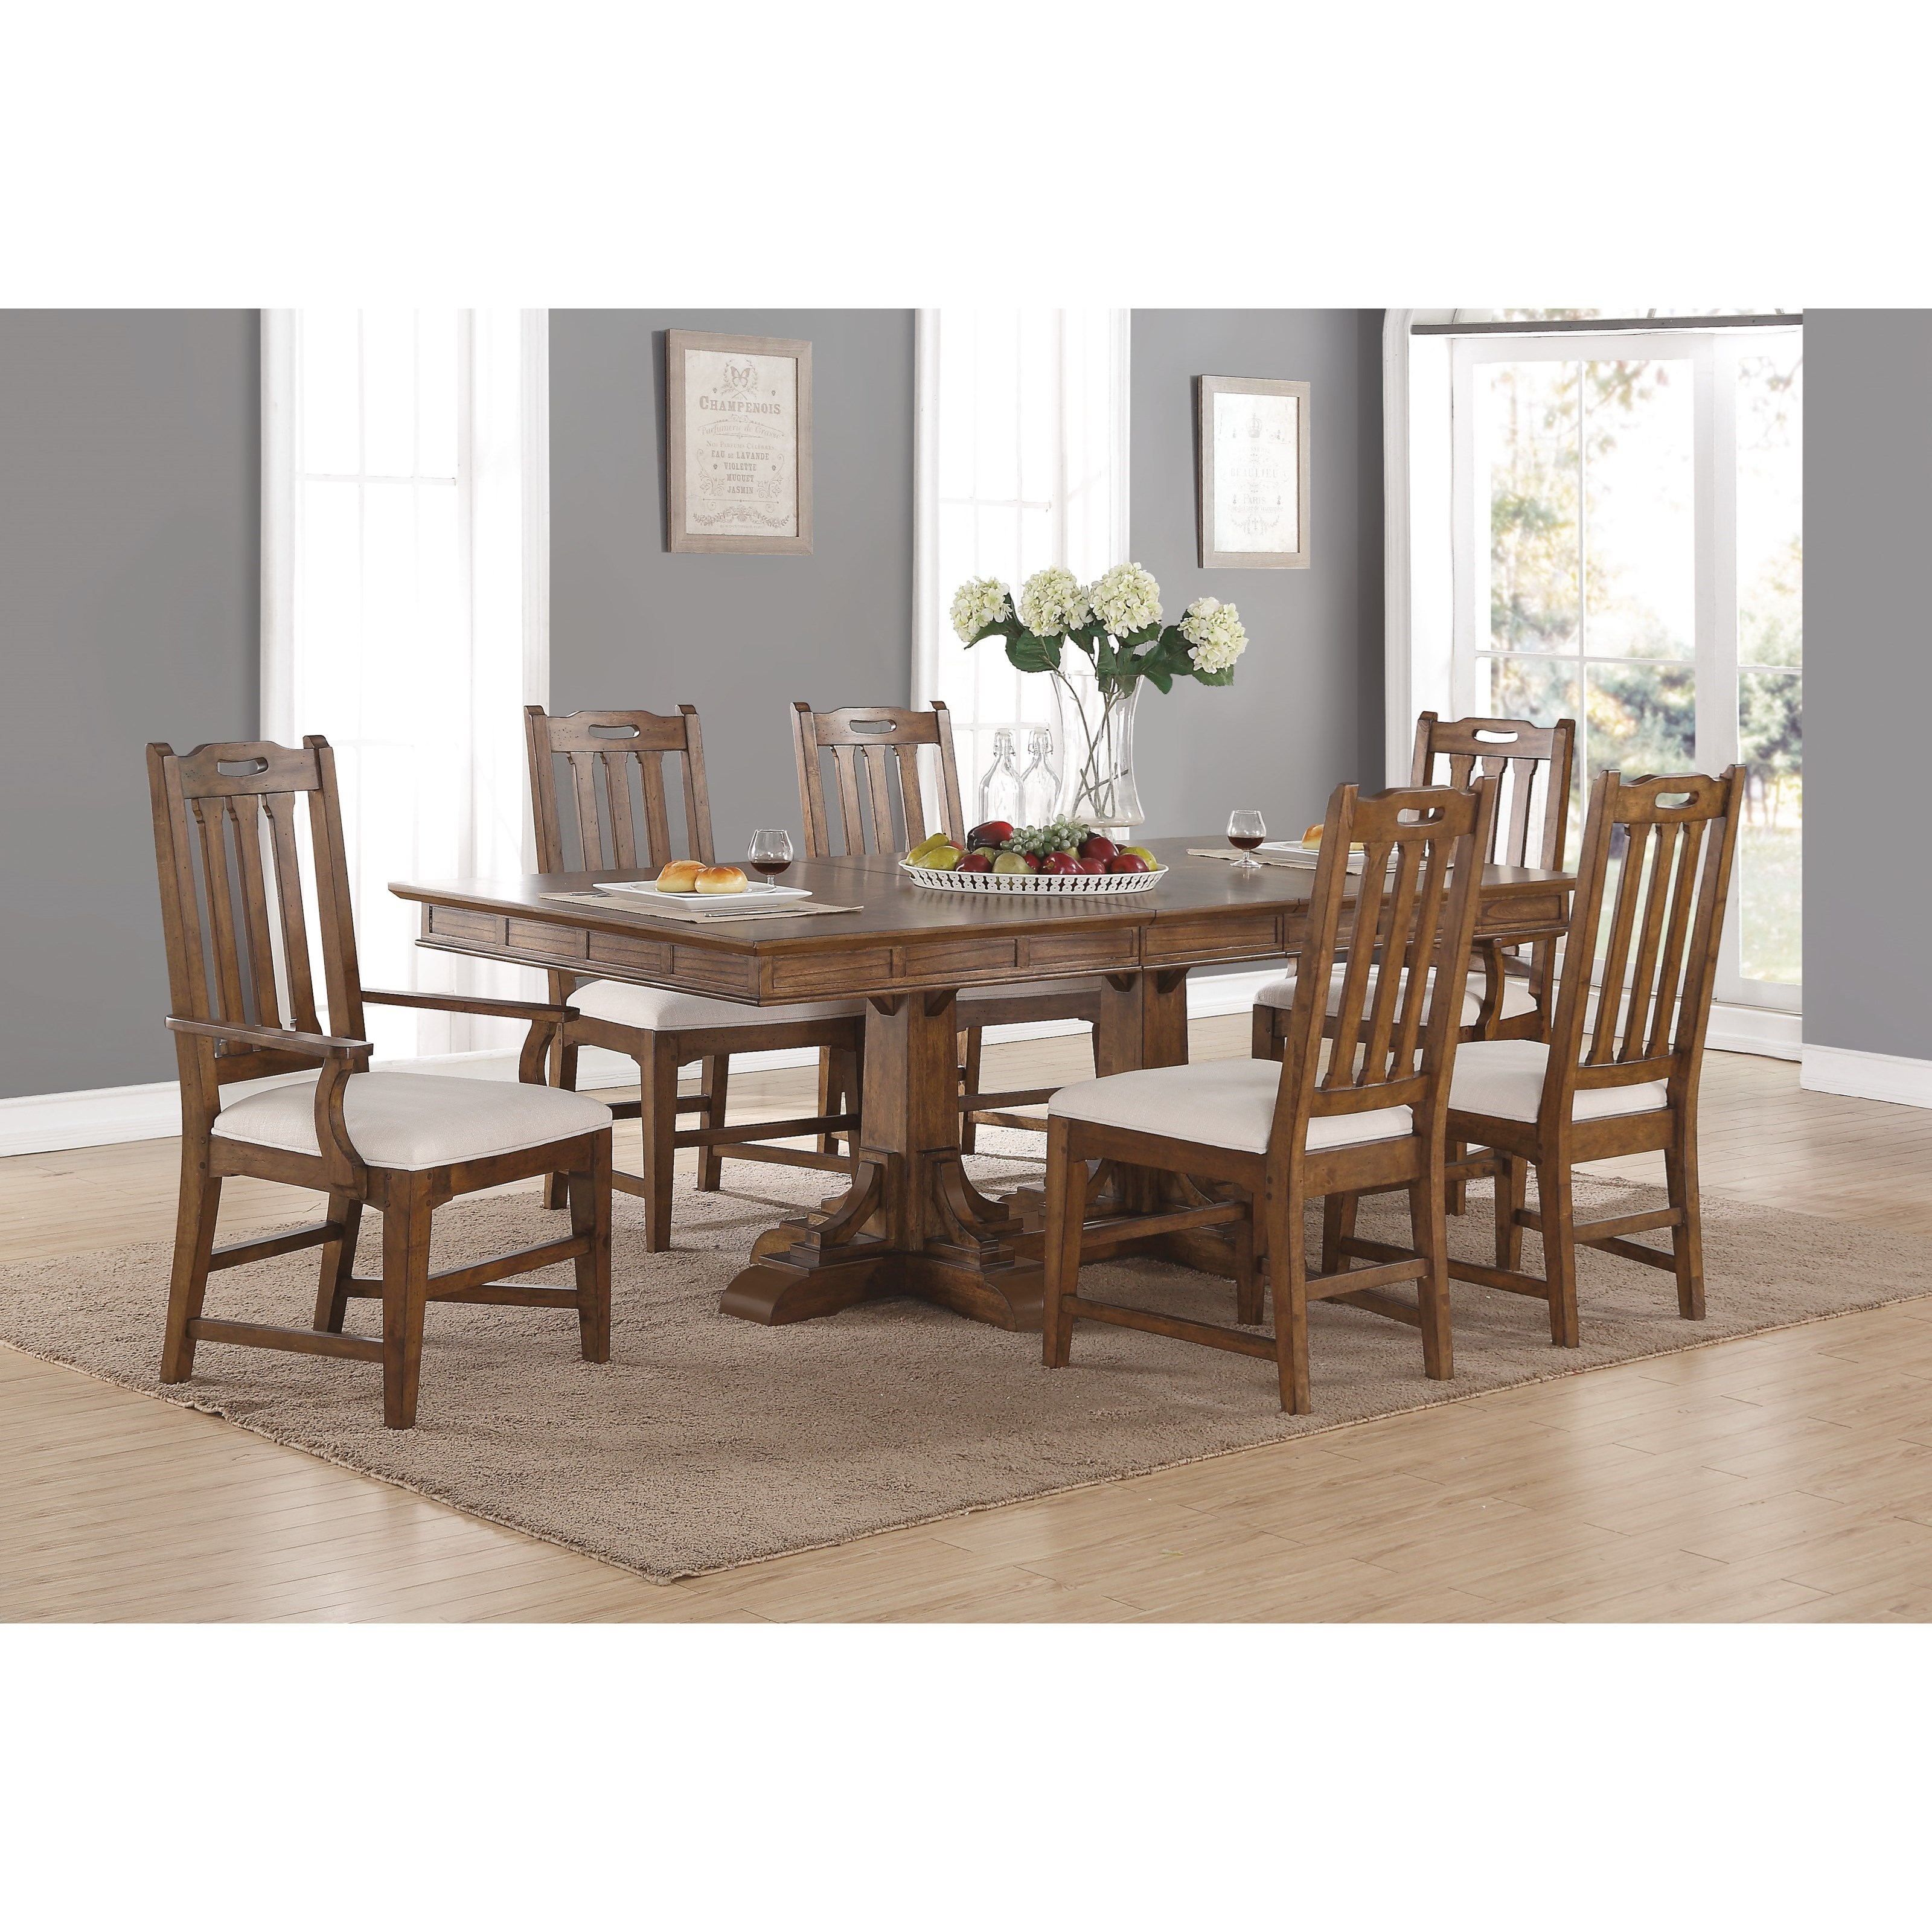 Flexsteel wynwood collection sonora mission formal dining for Formal dining table and chairs